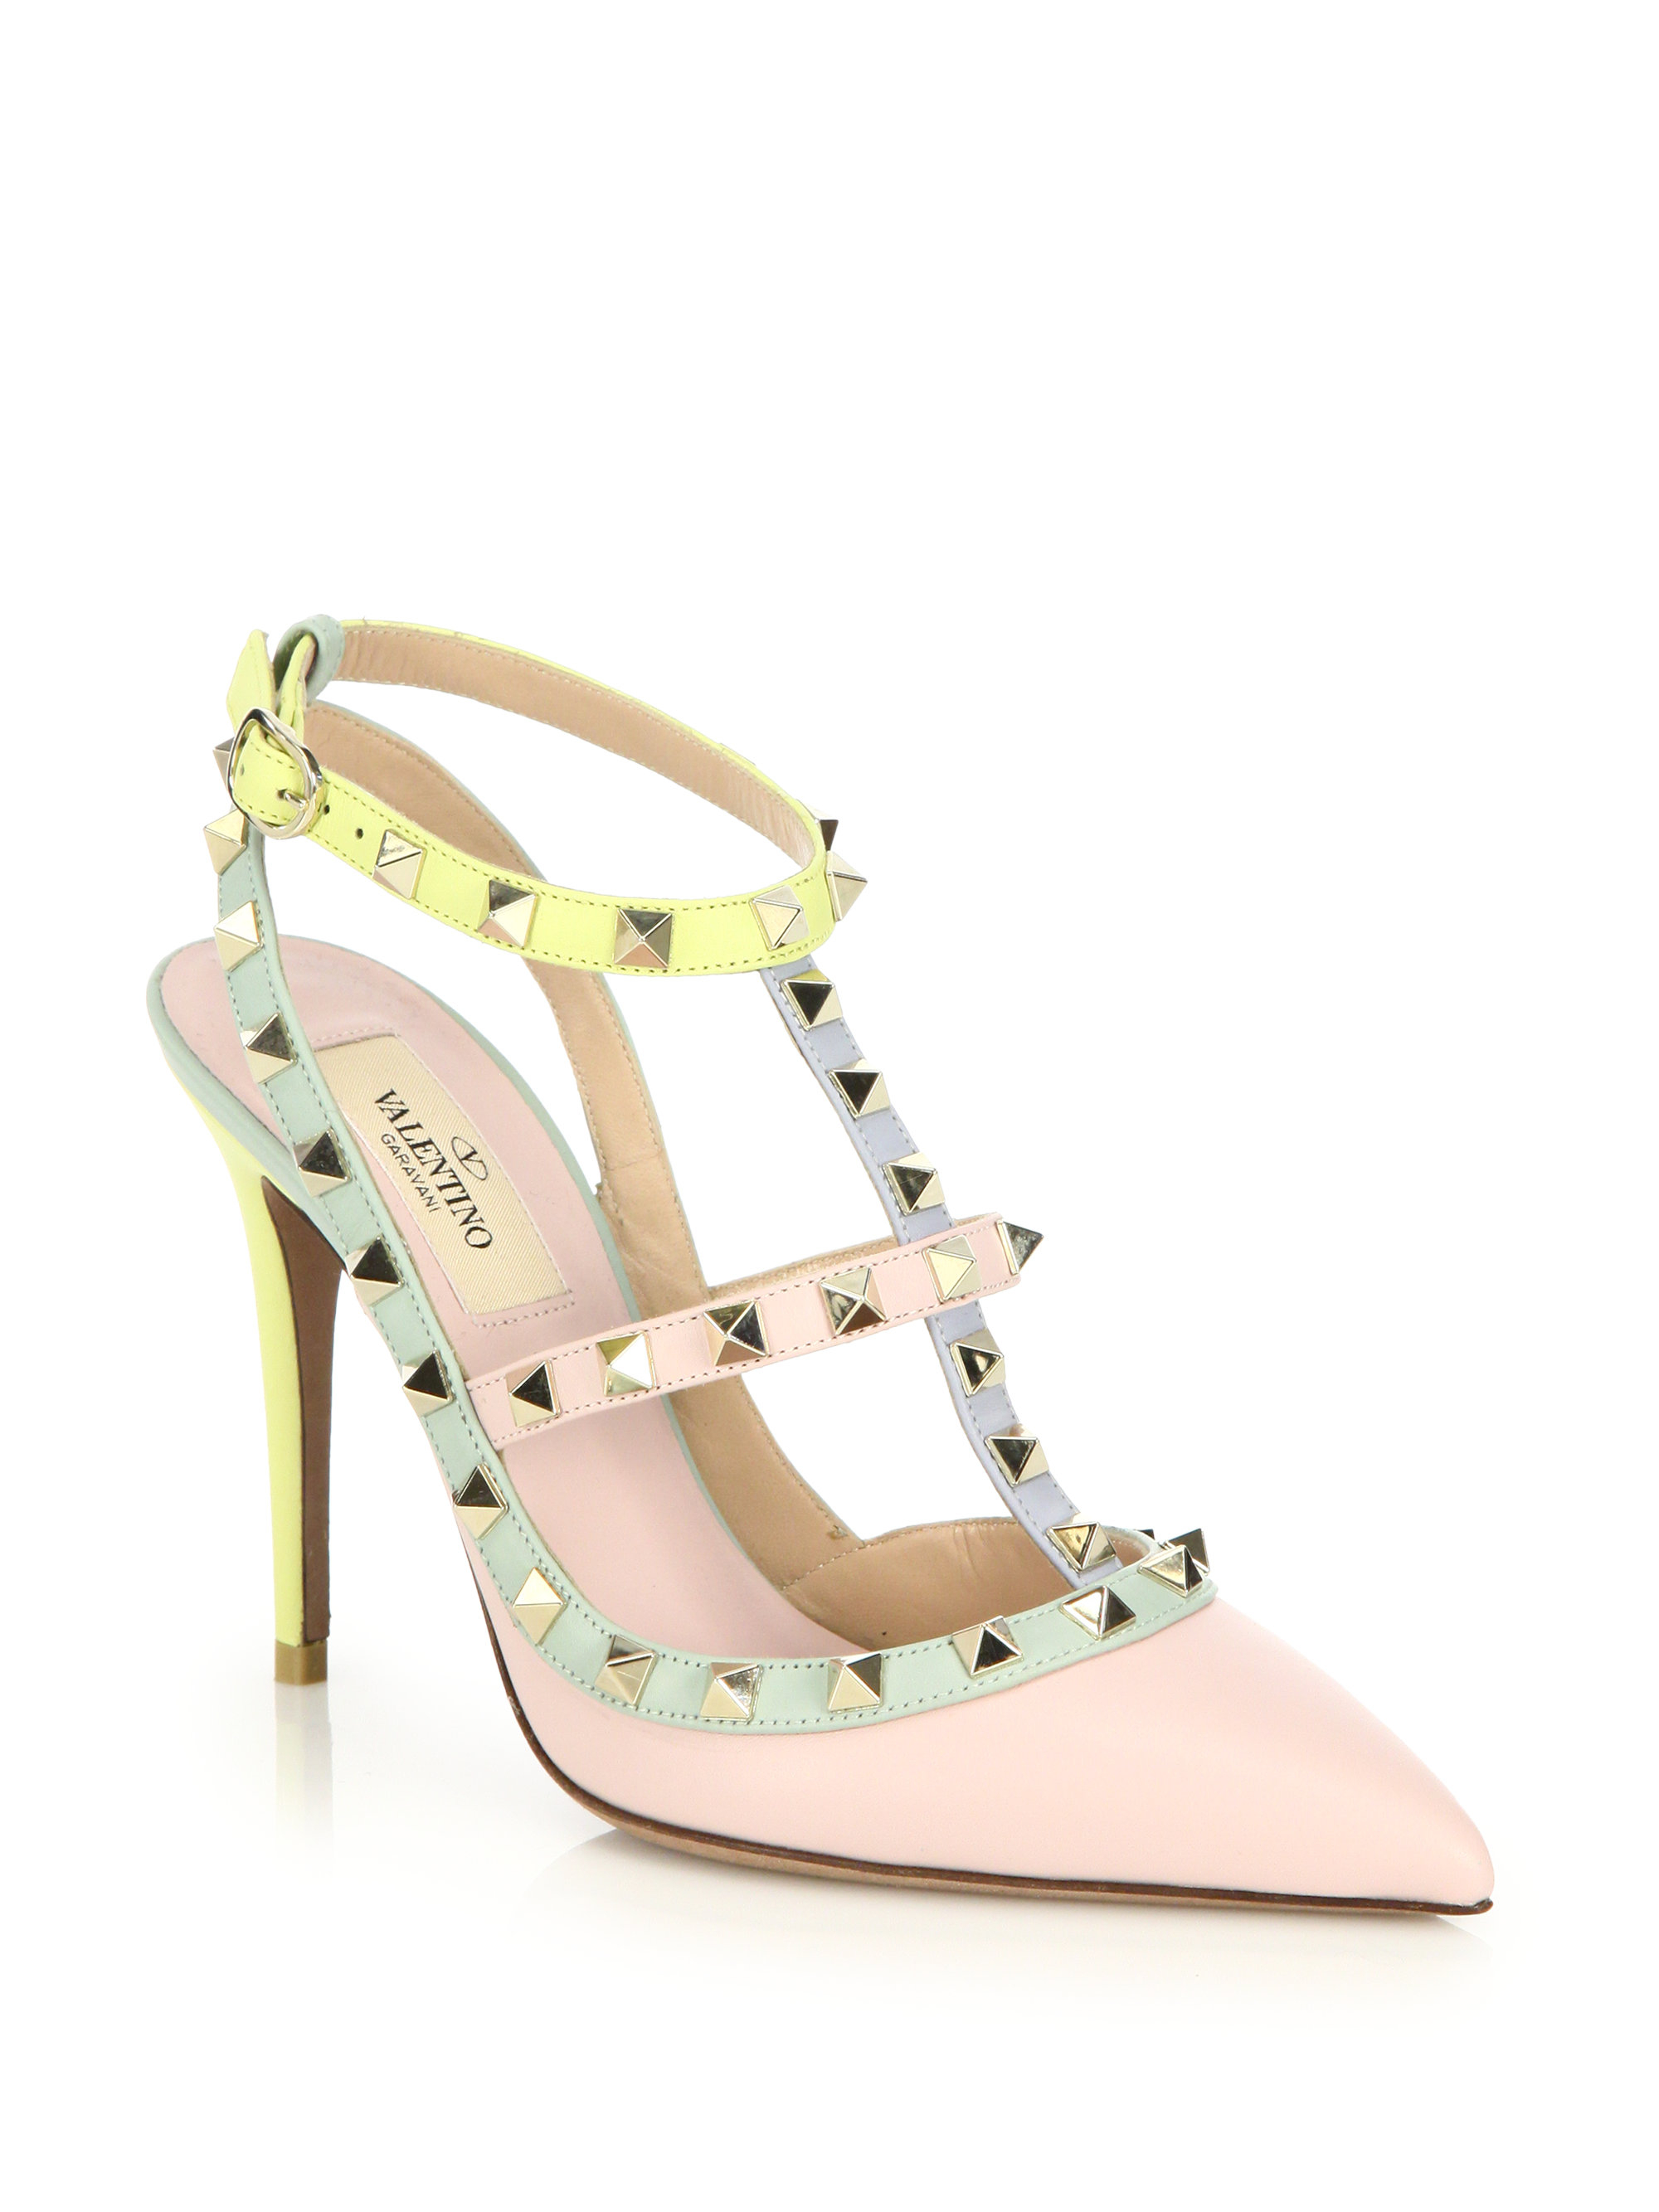 free shipping view Valentino Leather Multicolor Pumps clearance comfortable lowest price cheap price WTkyHG23hI